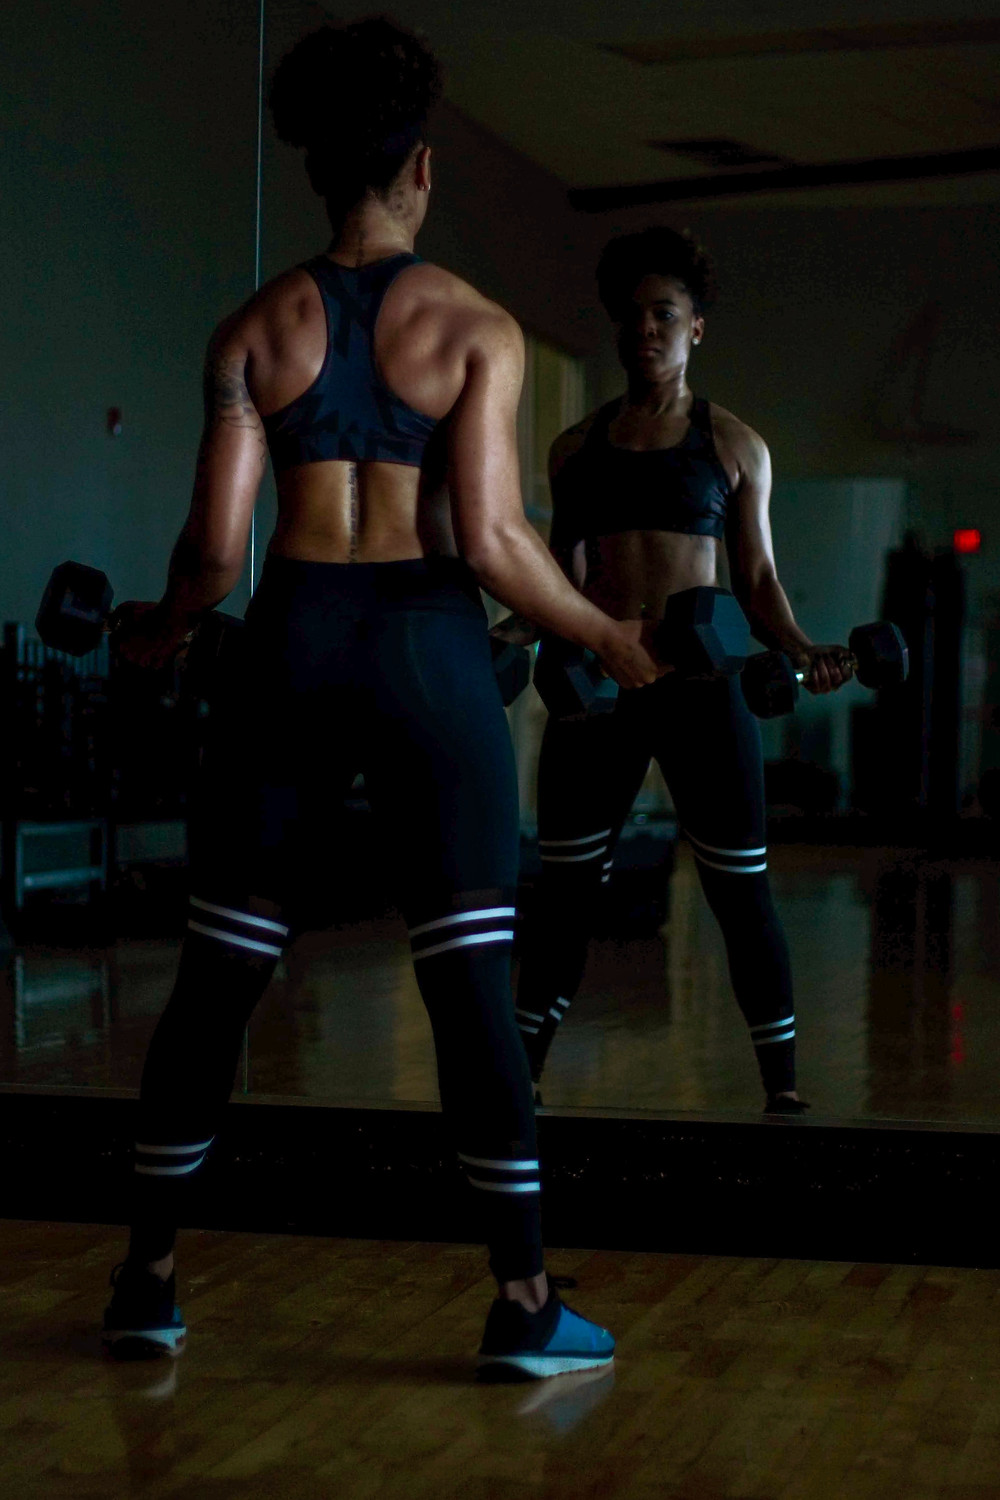 A woman lifts two dumbbells in front of a mirror